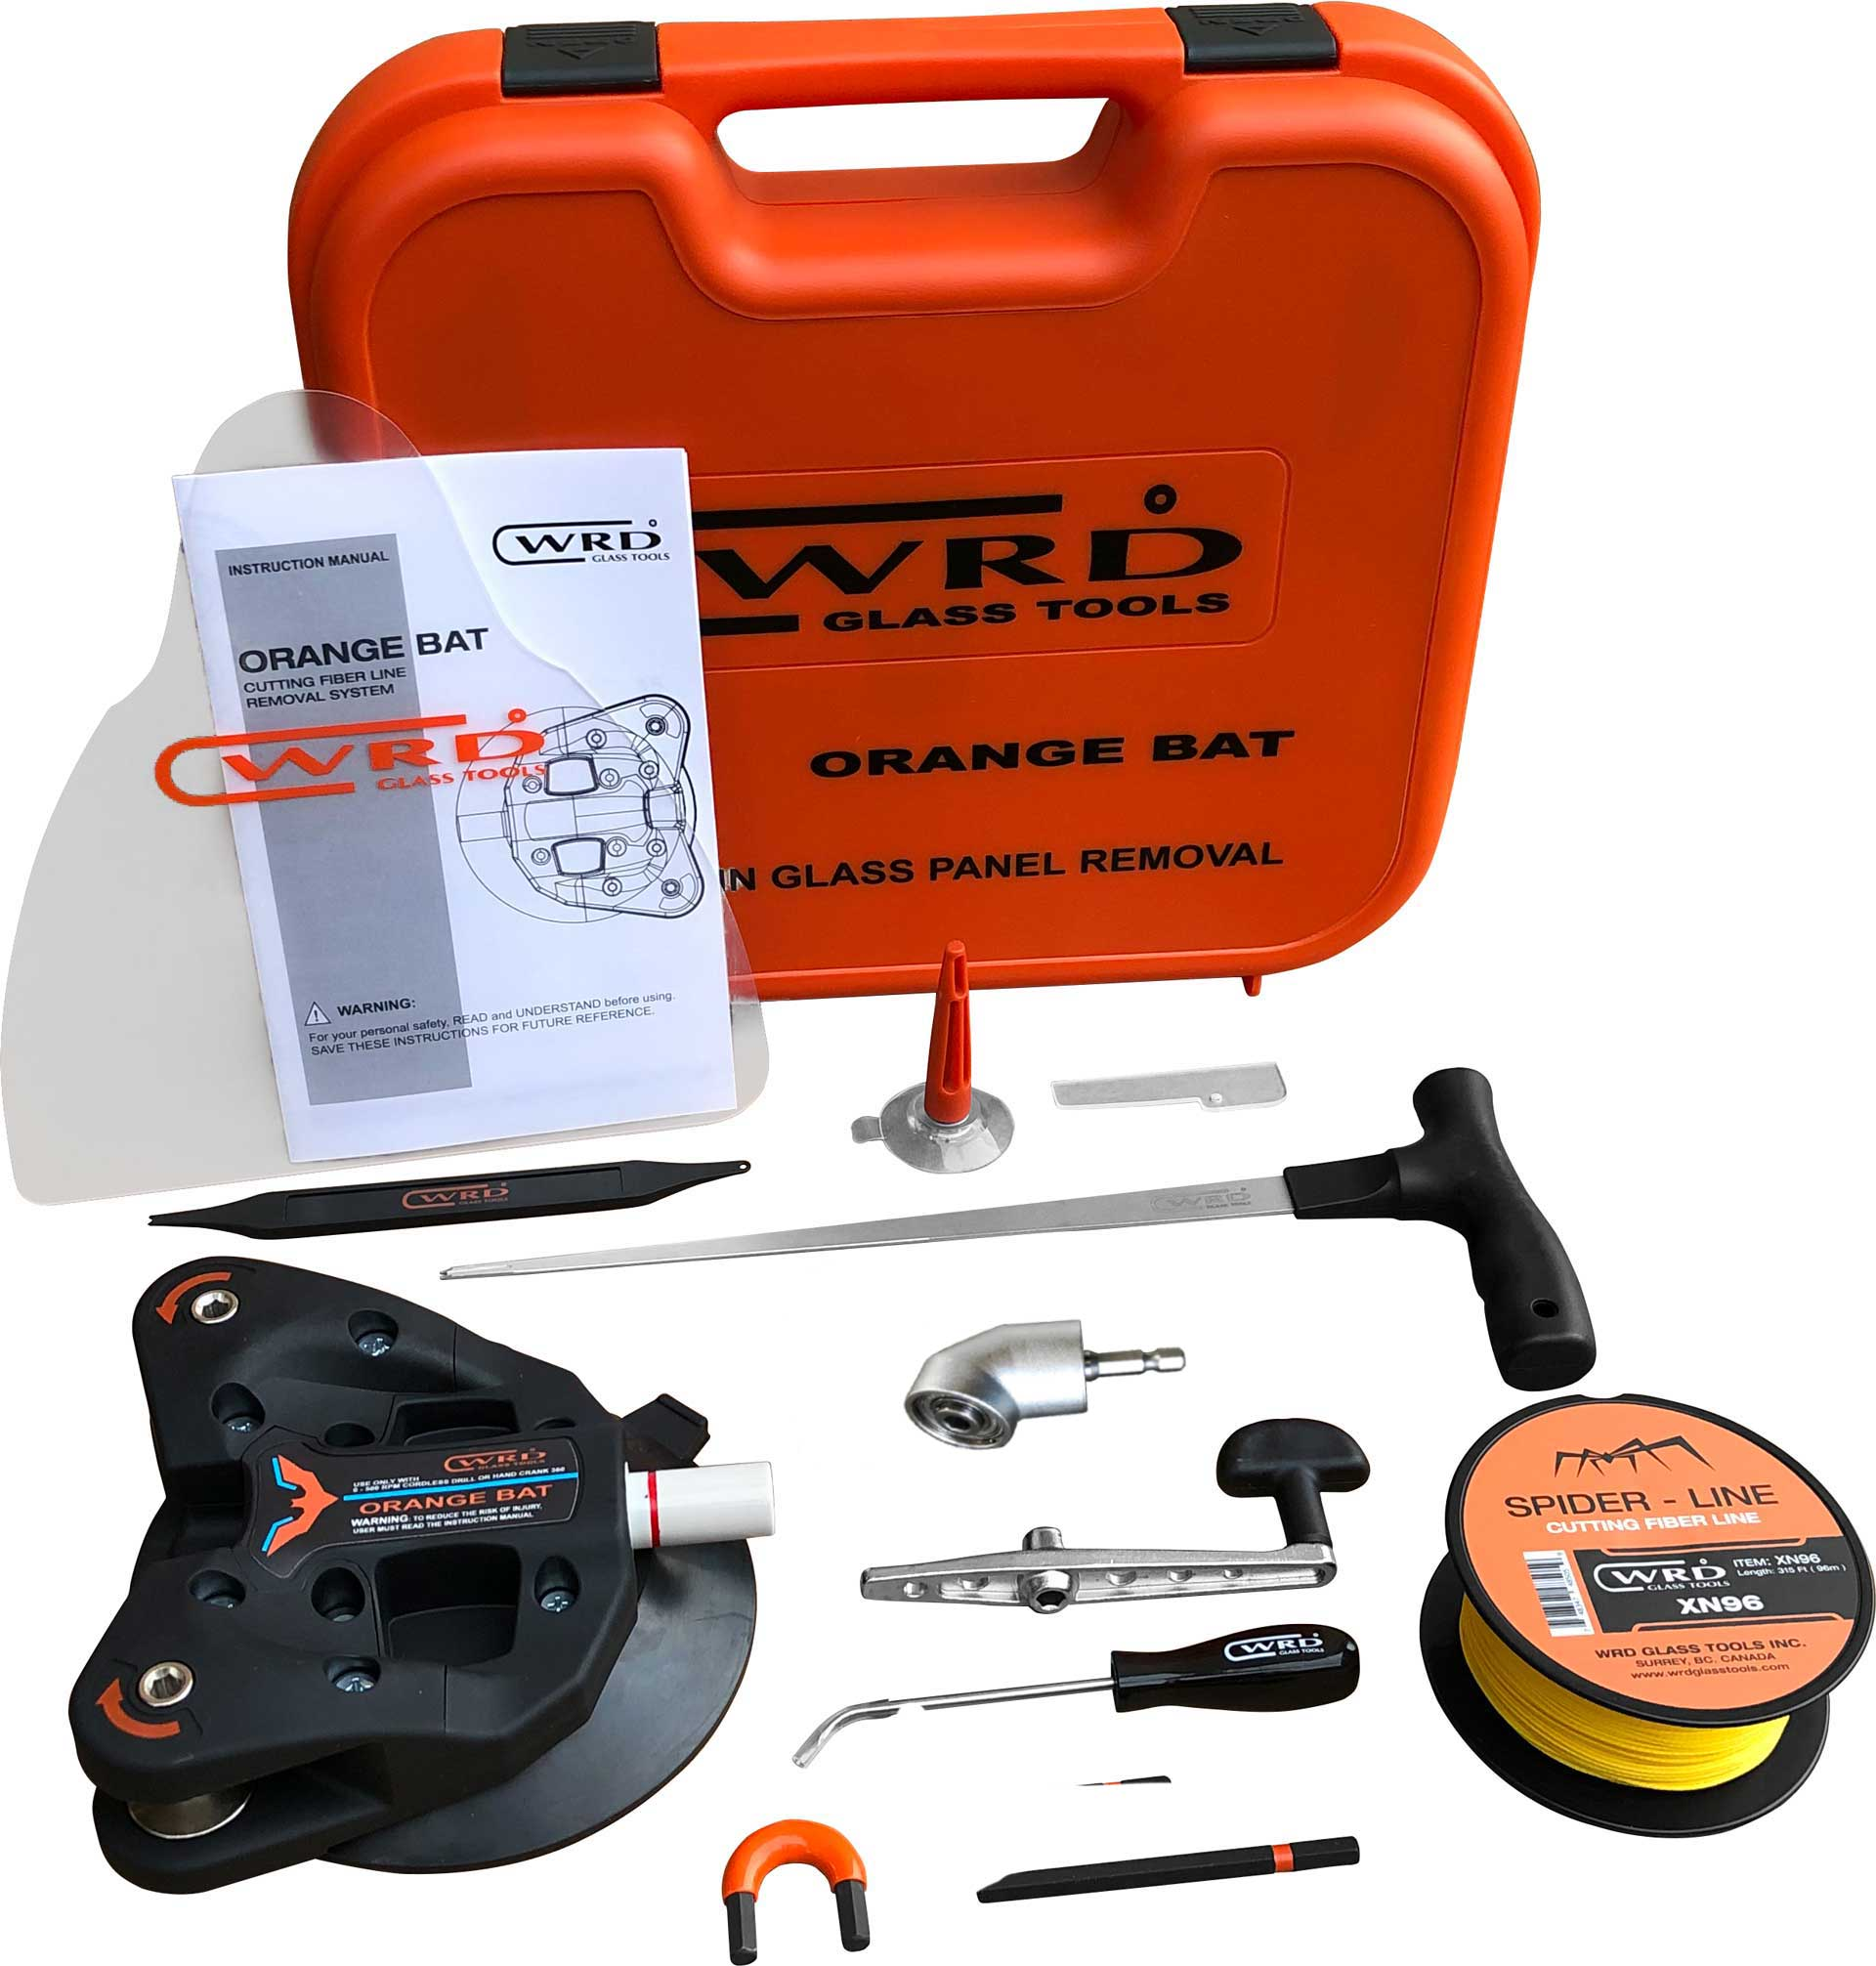 Kit -300K Glass Removal Tool Kit Just Released New Dual Spindle Design WRD Orange Bat